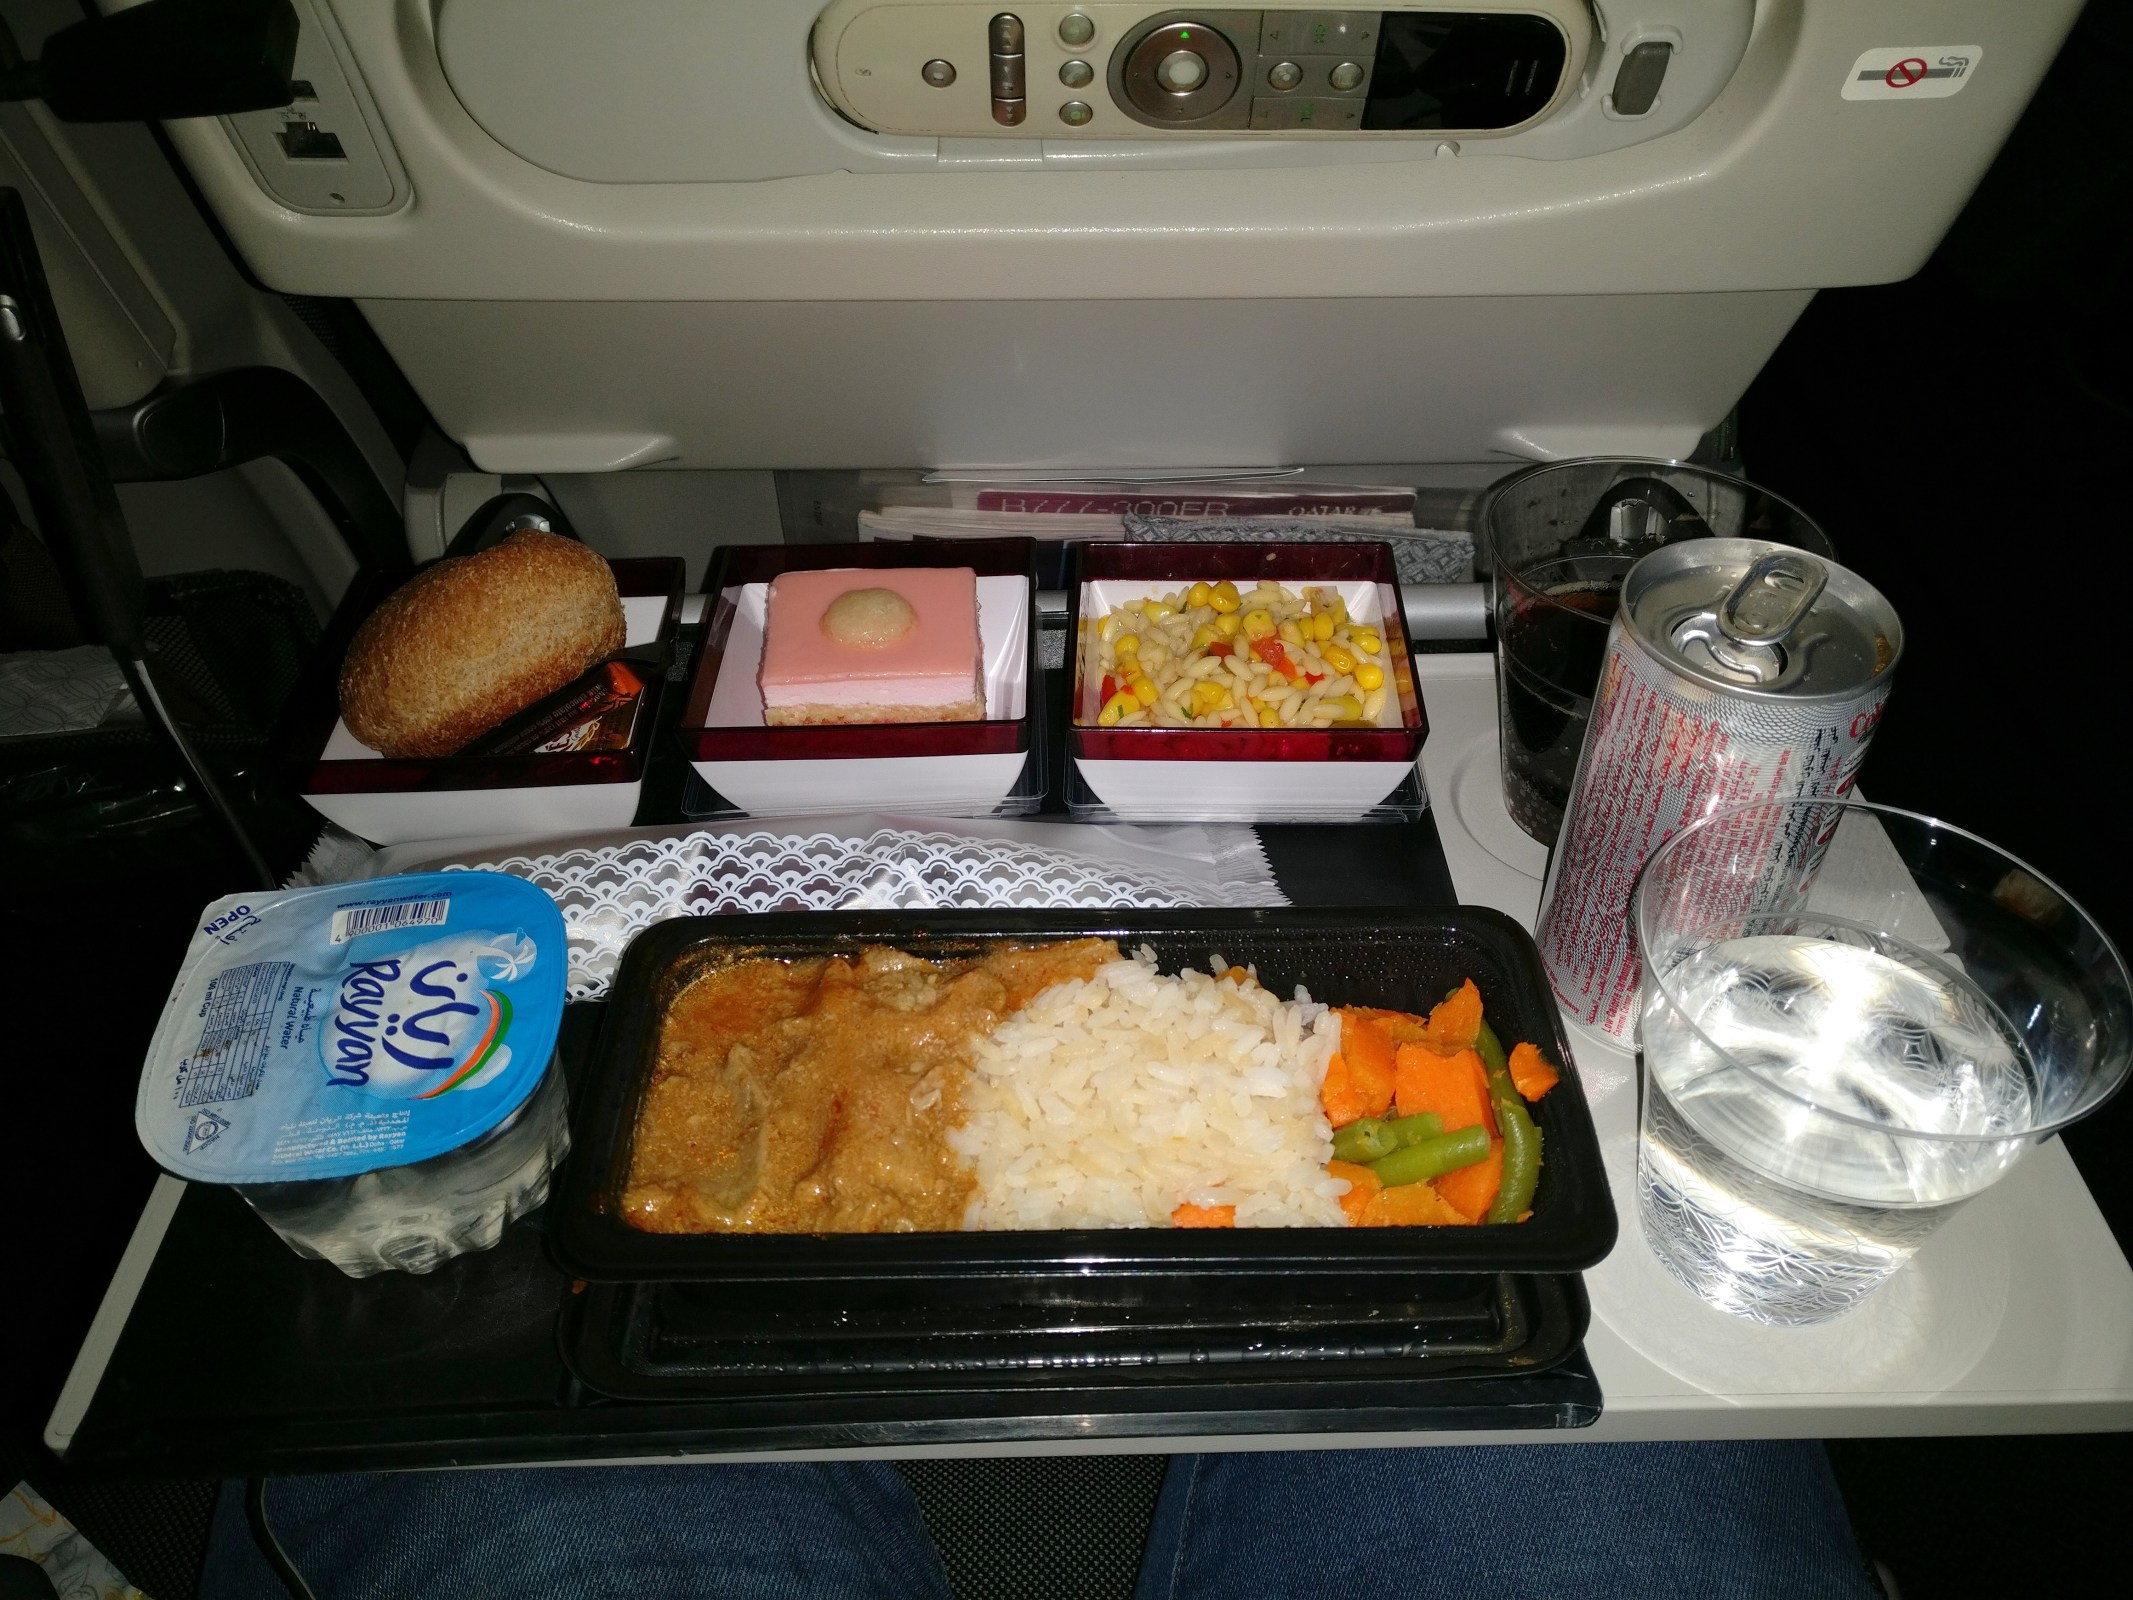 Qatar Airways Economy Class Boeing 777 Dinner